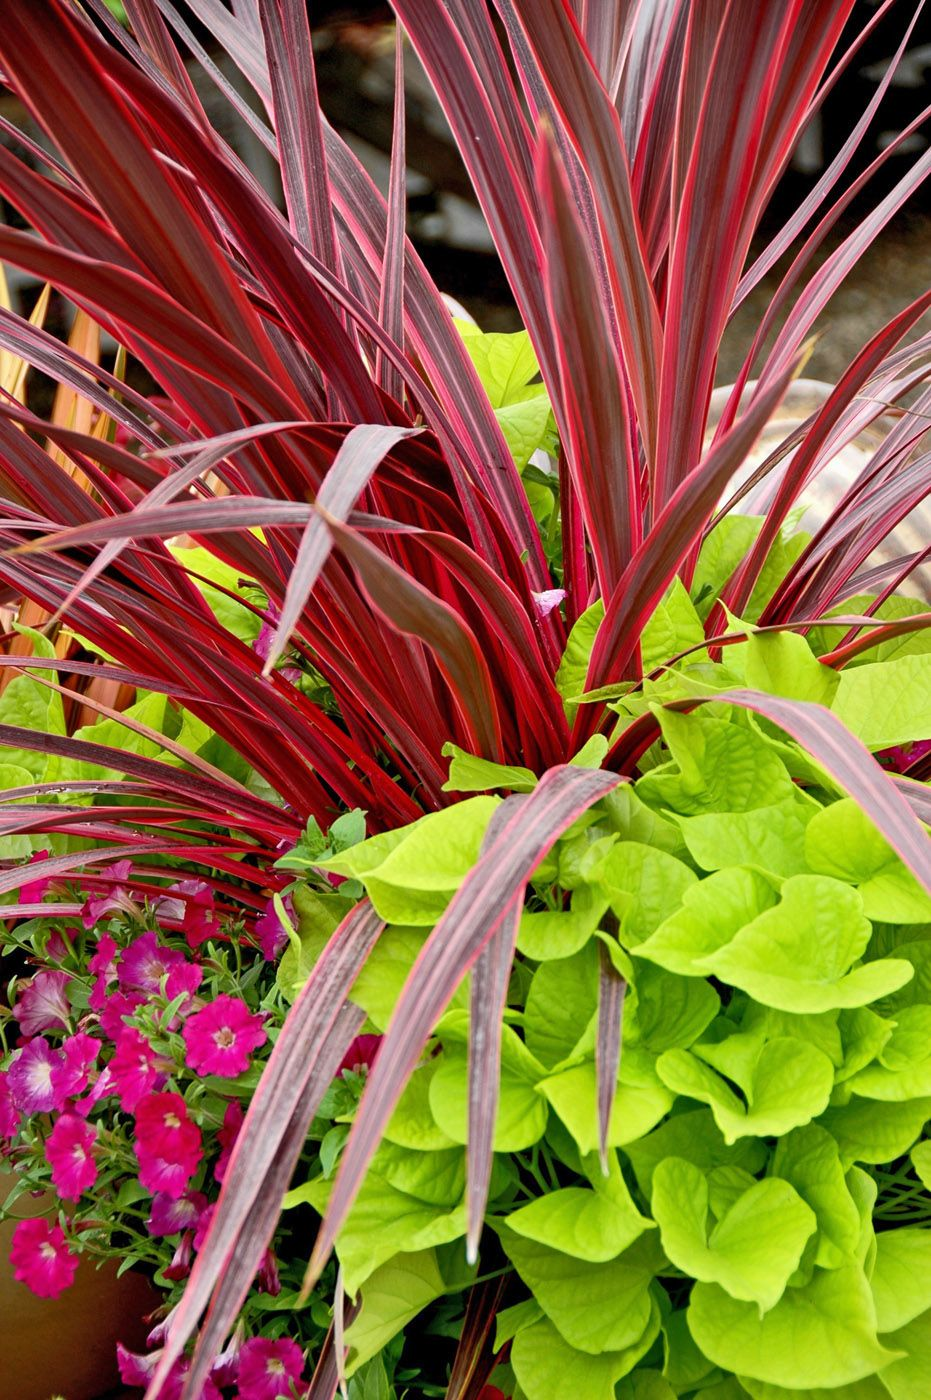 Cordylines Dagger Like Look Soars In Popularity Front Yard Plants Garden Containers Flower Pots